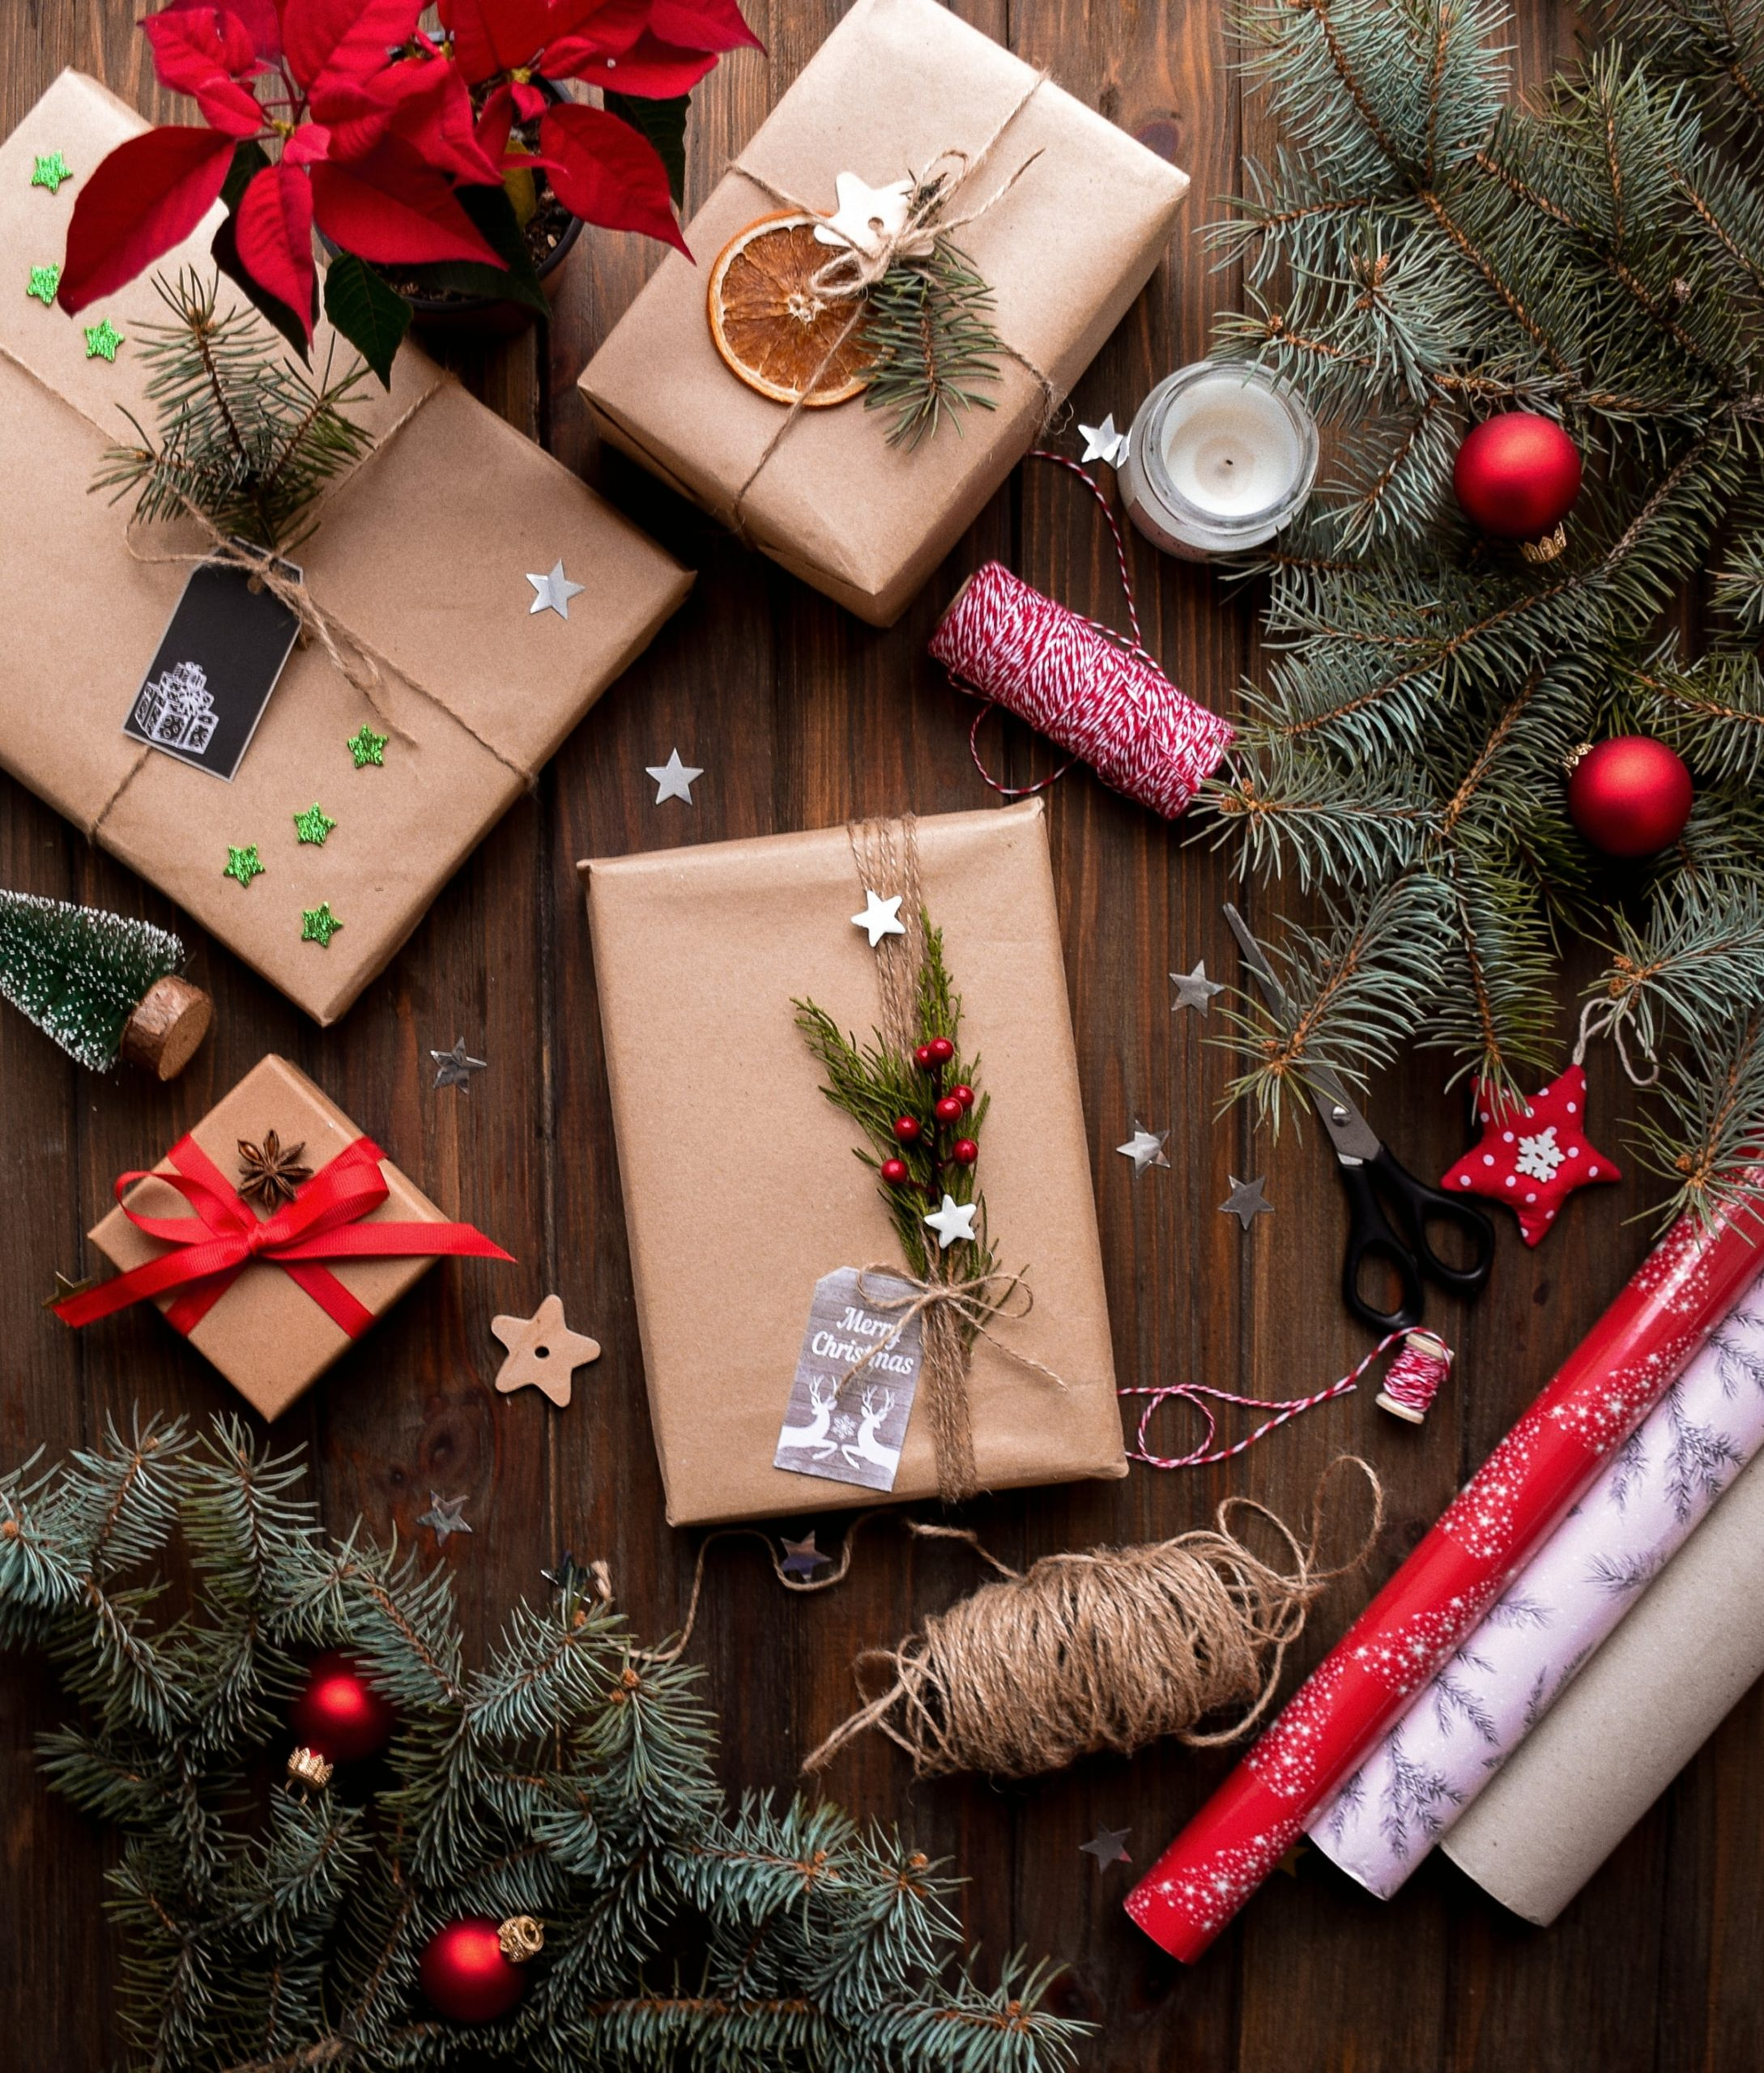 5 Christmas Gift Ideas for your Remote Boss